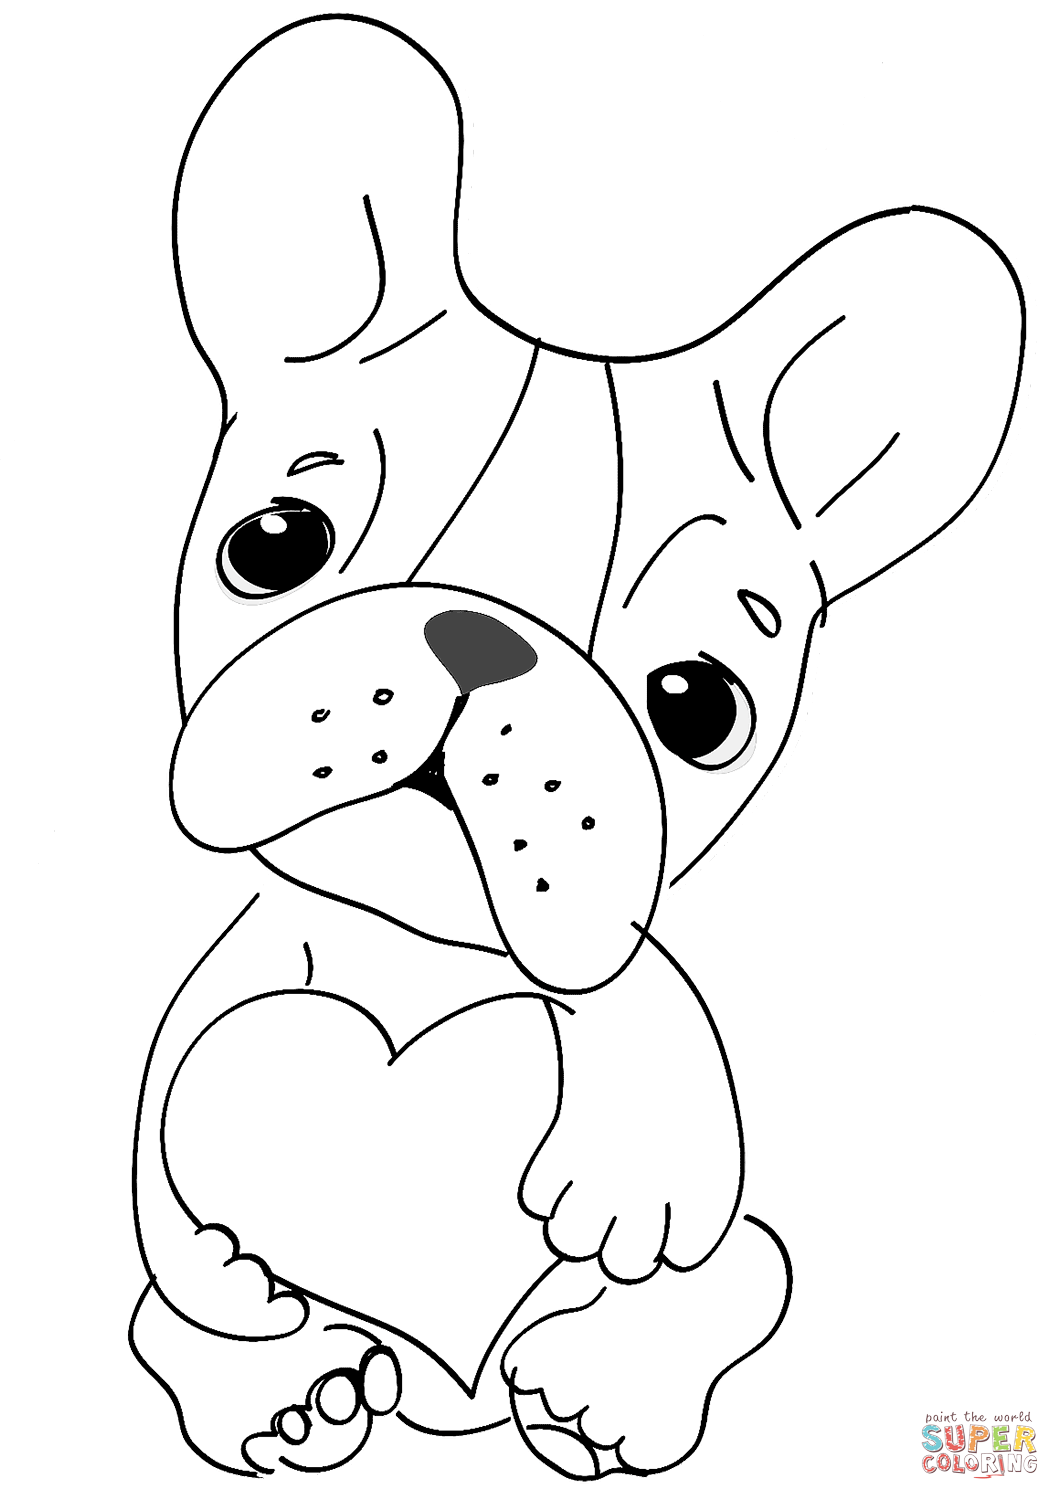 kawaii dog coloring pages cute dog coloring pages to download and print for free dog kawaii coloring pages